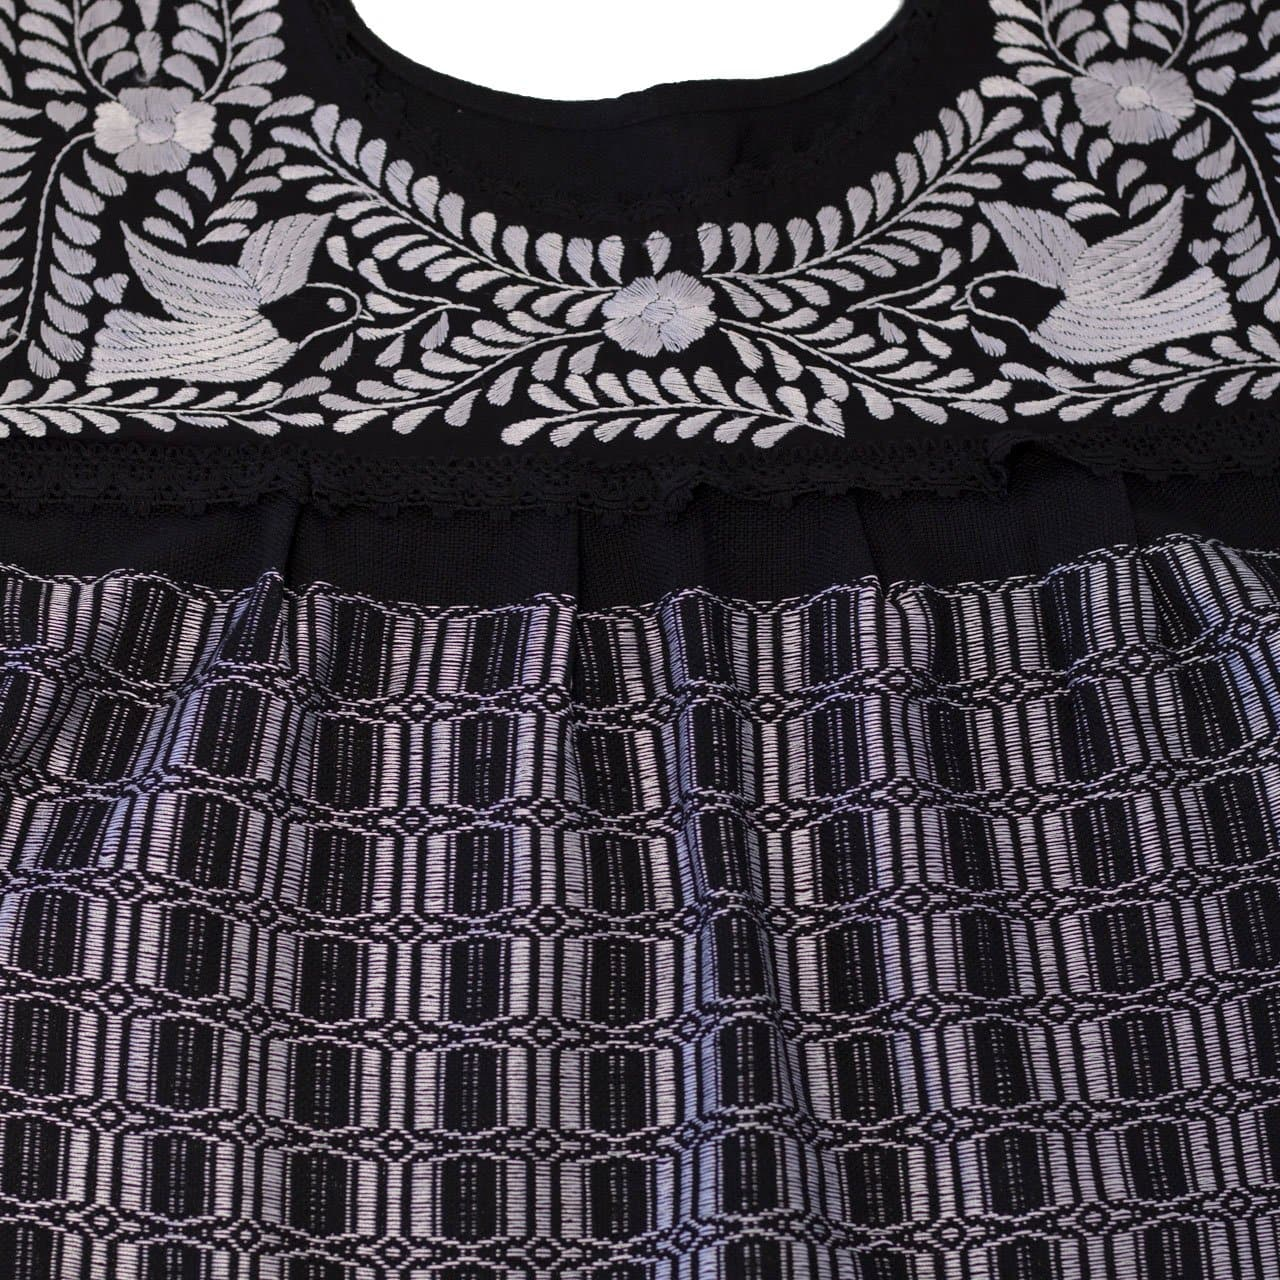 Mitla Hand Embroidered Black Telar Dress